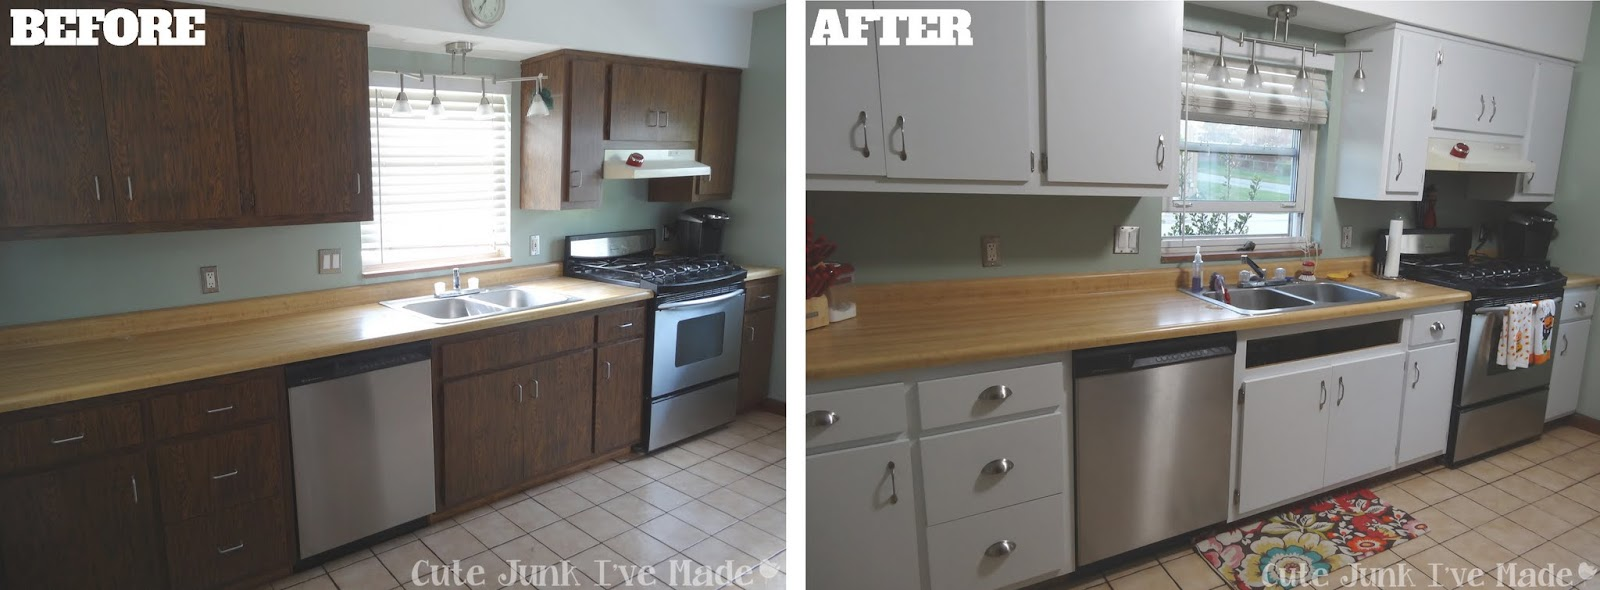 cute junk i 39 ve made how to paint laminate cabinets part ForBefore And After Pictures Of Painted Laminate Kitchen Cabinets